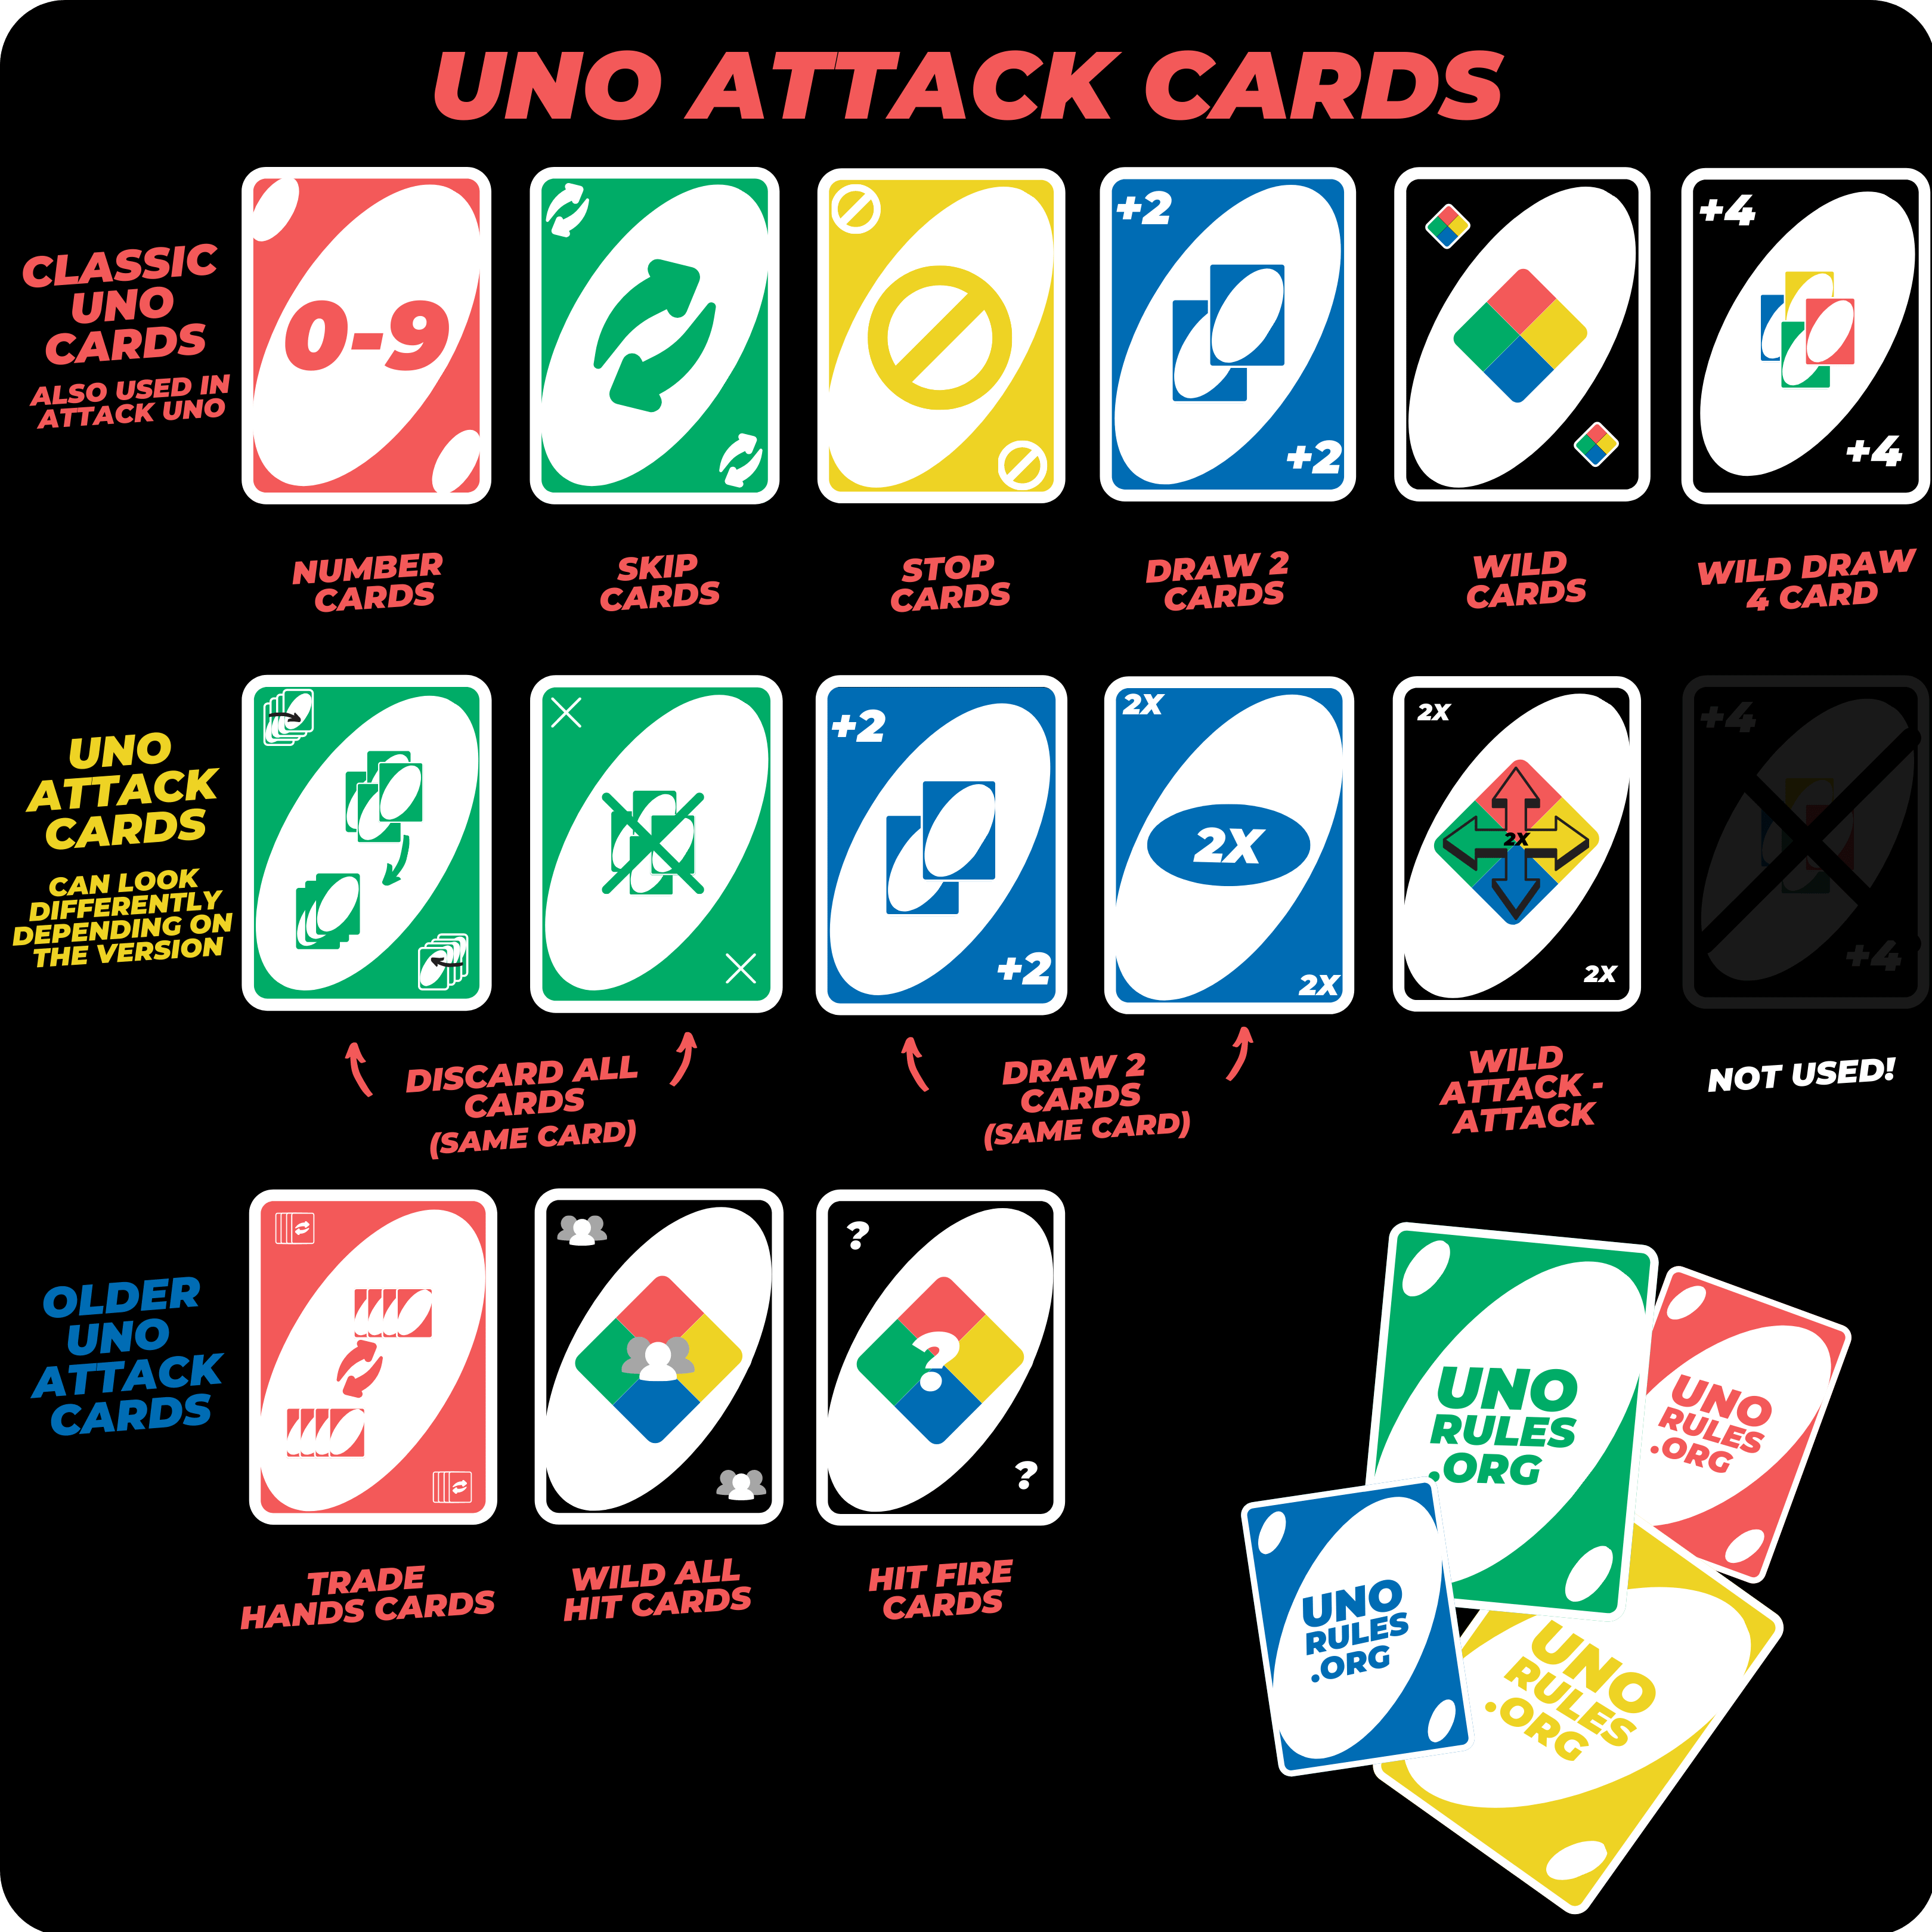 Uno Attack Cards - All cards